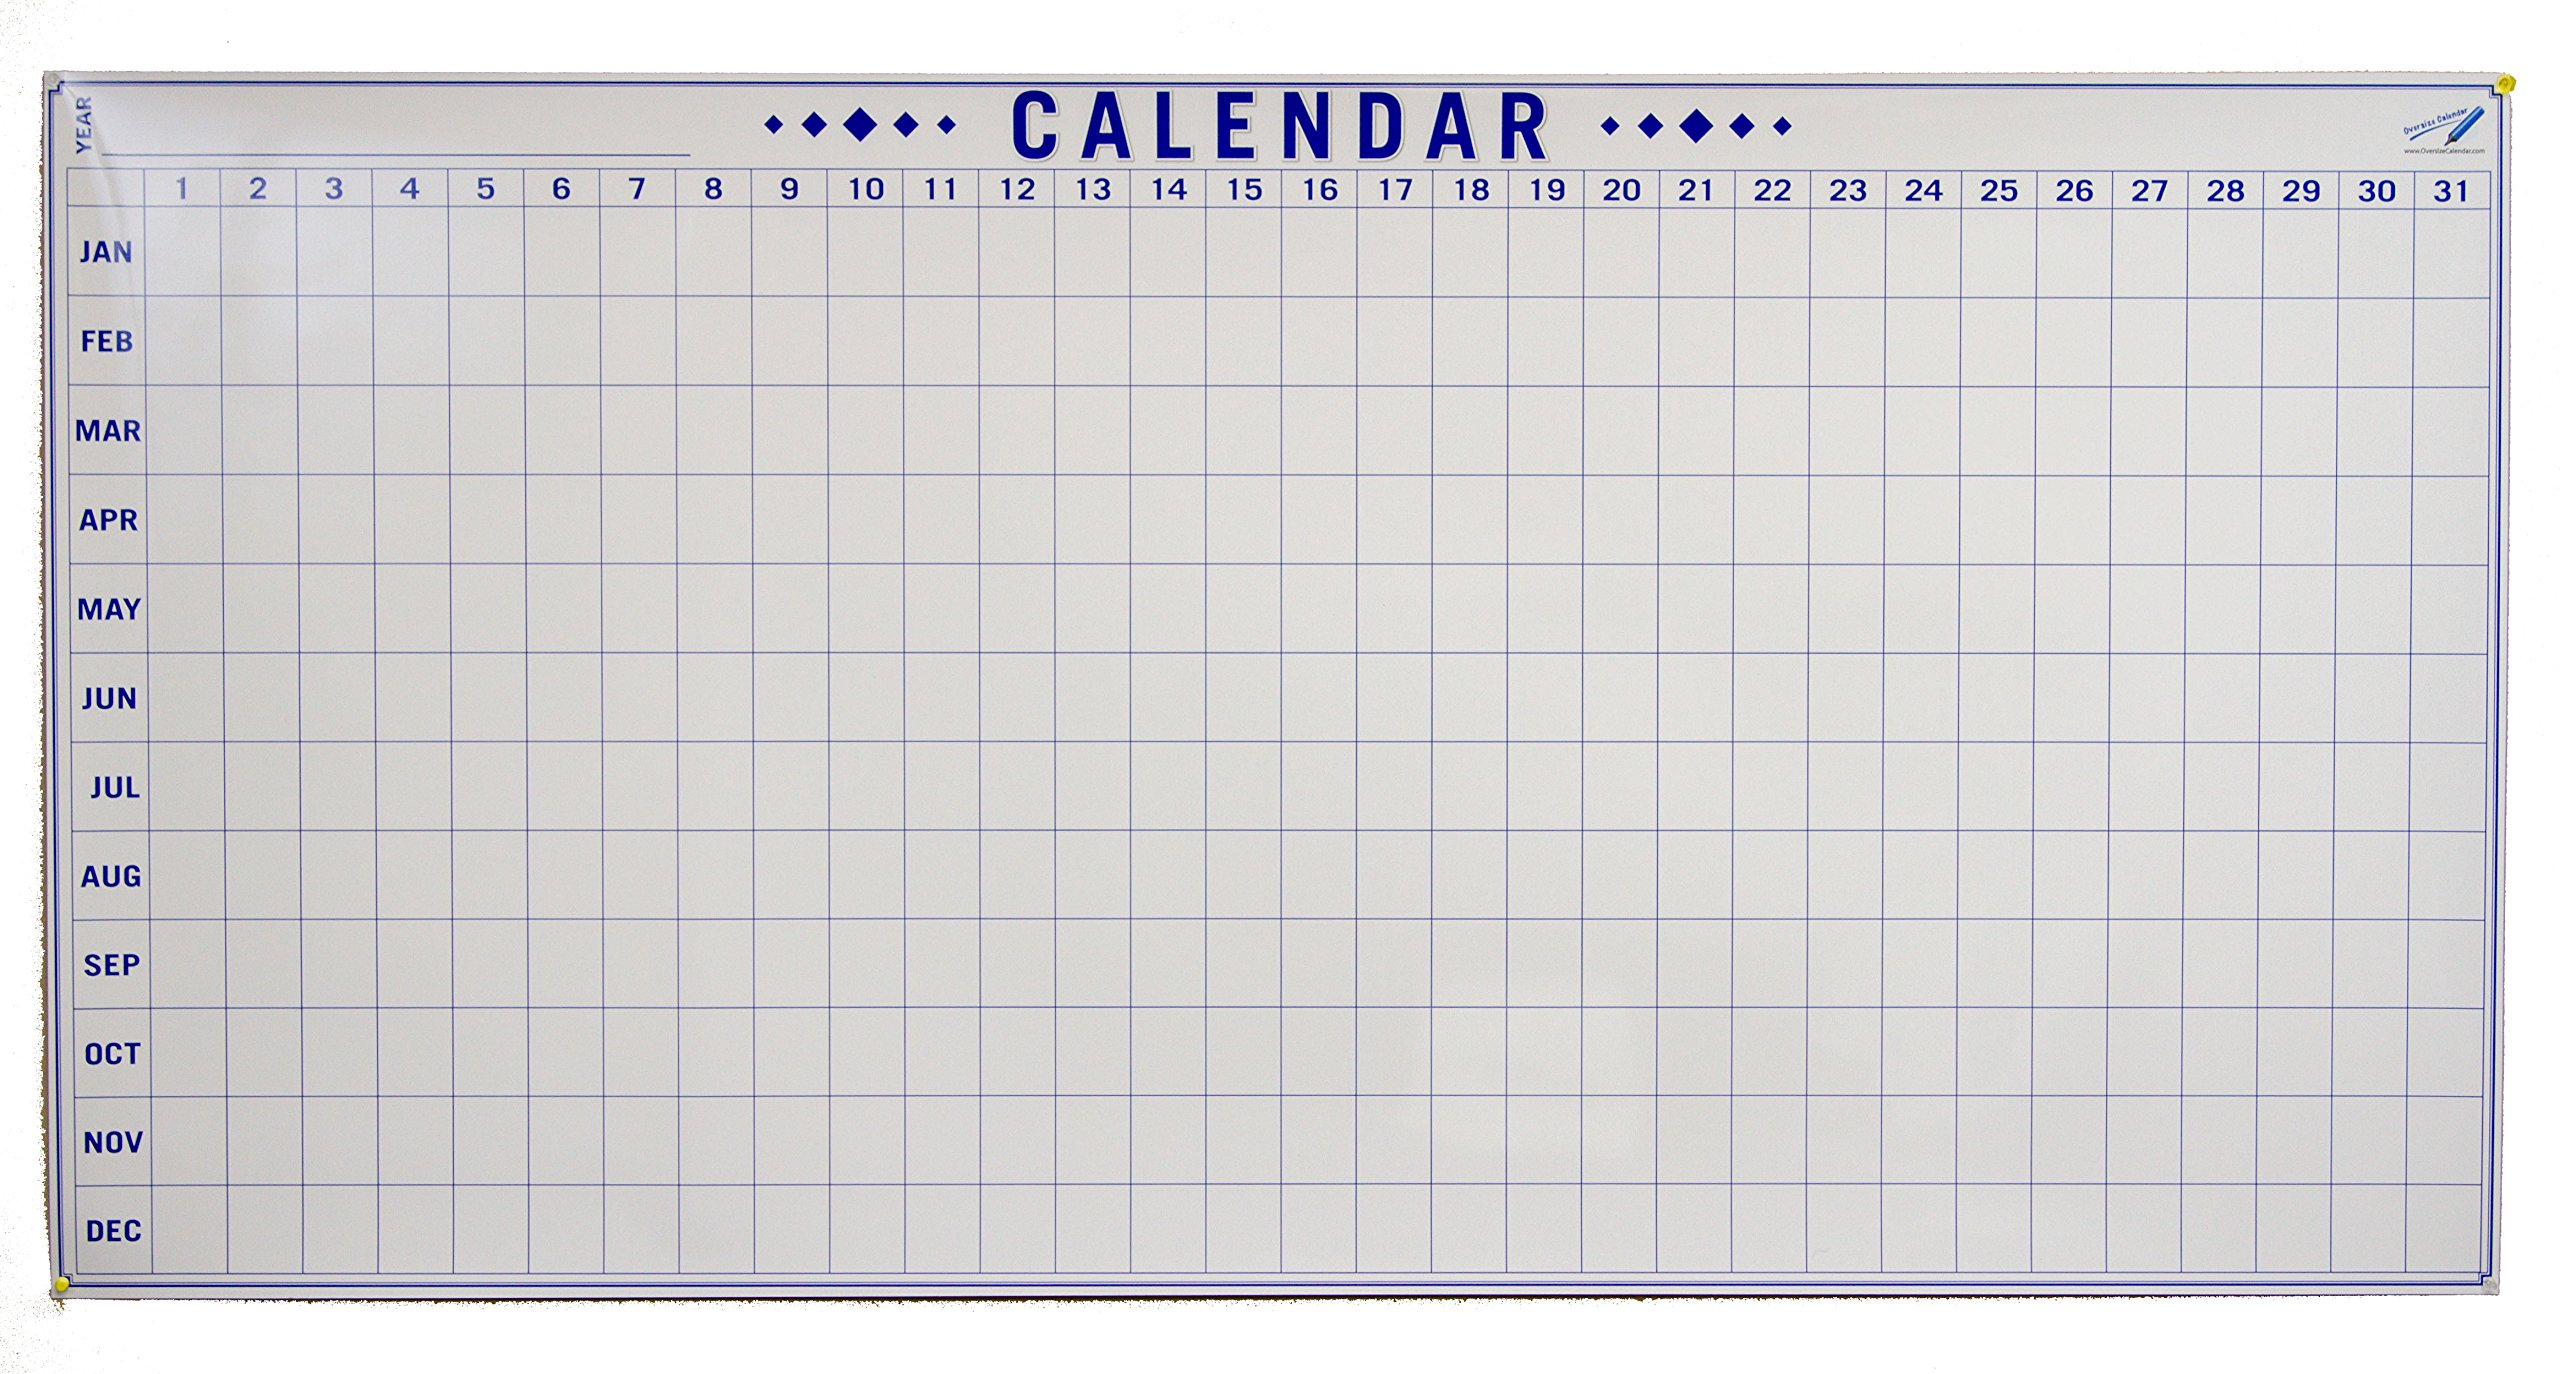 Dry Erase Julian Date Calendar - 36 x 72 Large Dry Erase Wall Calendar - Large Wall Calendar - Reusable Annual Calendar - Wall Planner with Vertical Dates and Horizontal Months by Oversize Planner by ABI Digital Solutions (Image #5)